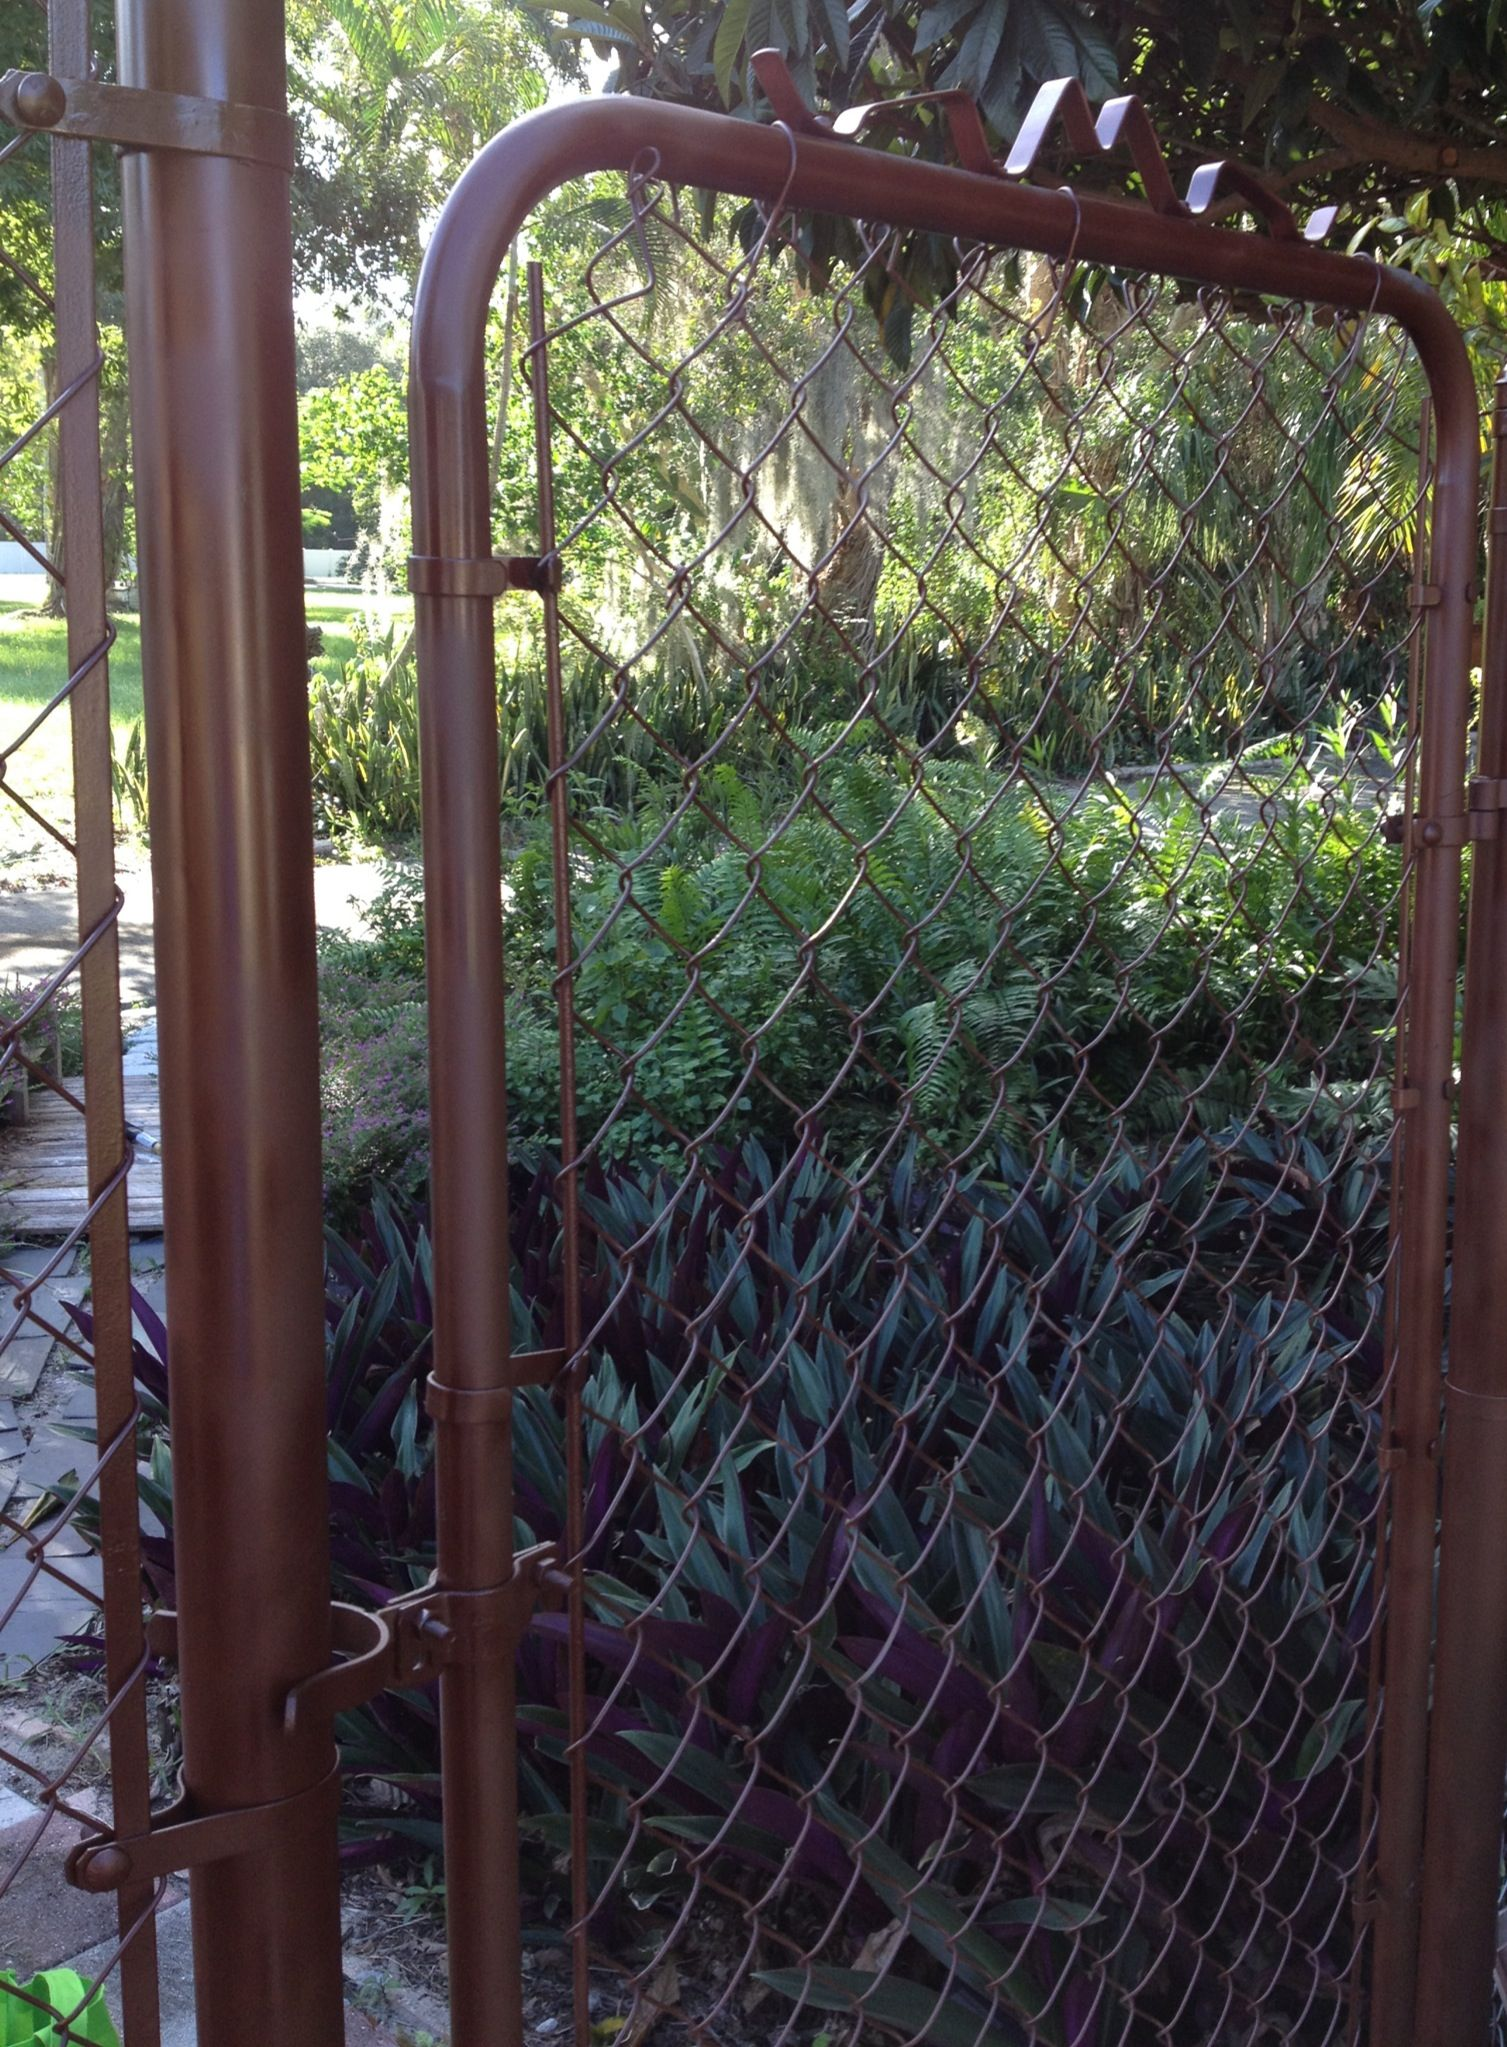 I Just Spray Painted My Chain Link Fence And Gate Looks